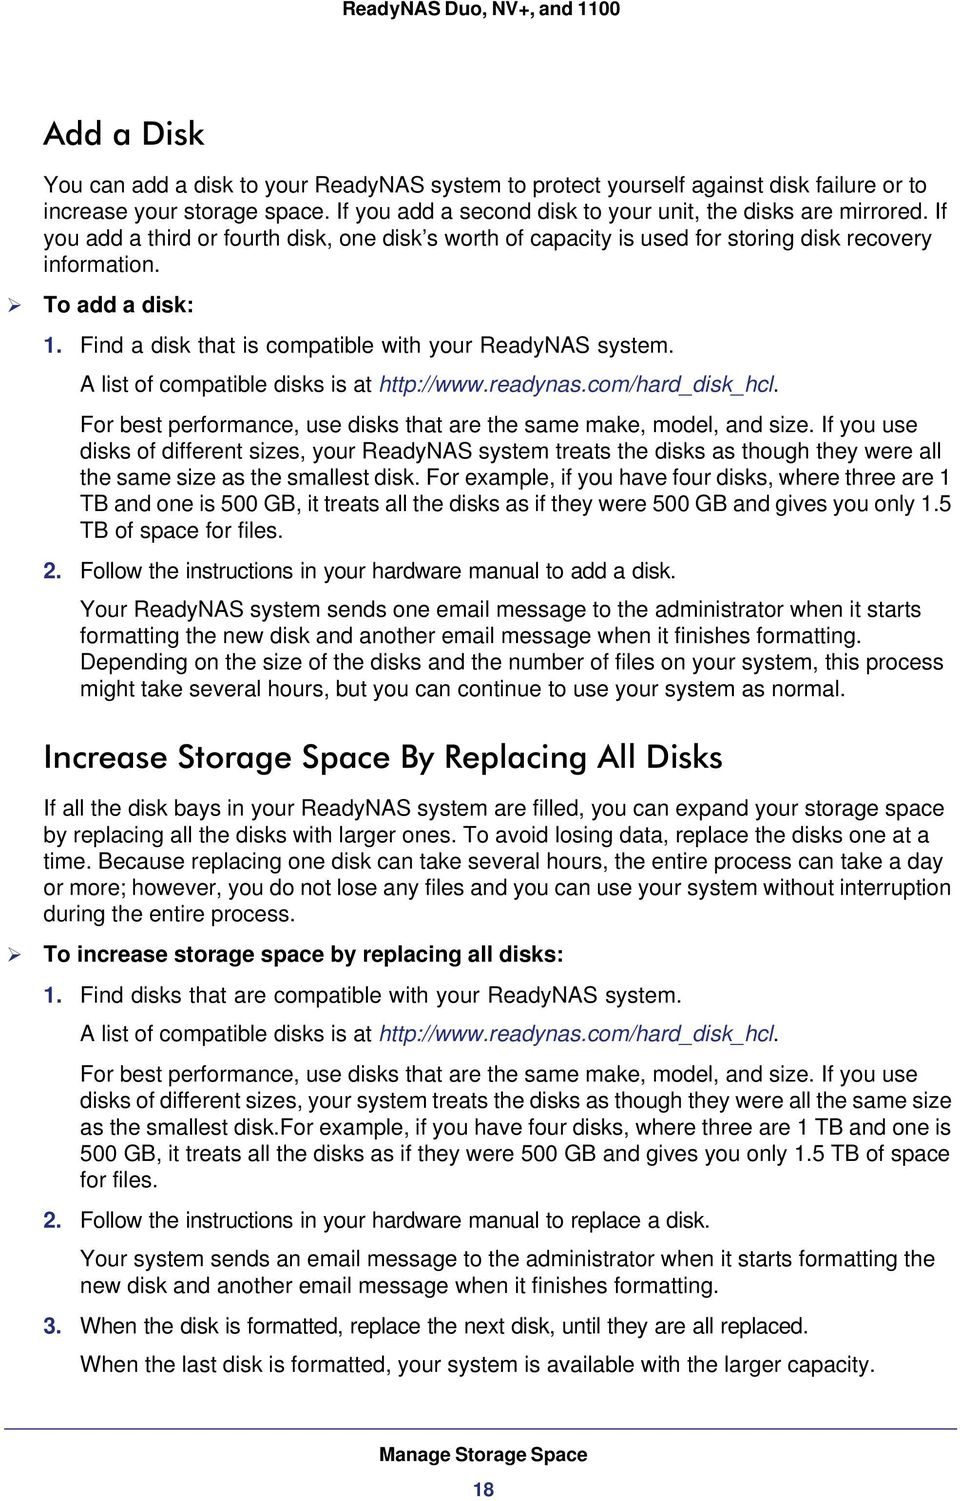 A list of compatible disks is at http://www.readynas.com/hard_disk_hcl. For best performance, use disks that are the same make, model, and size.